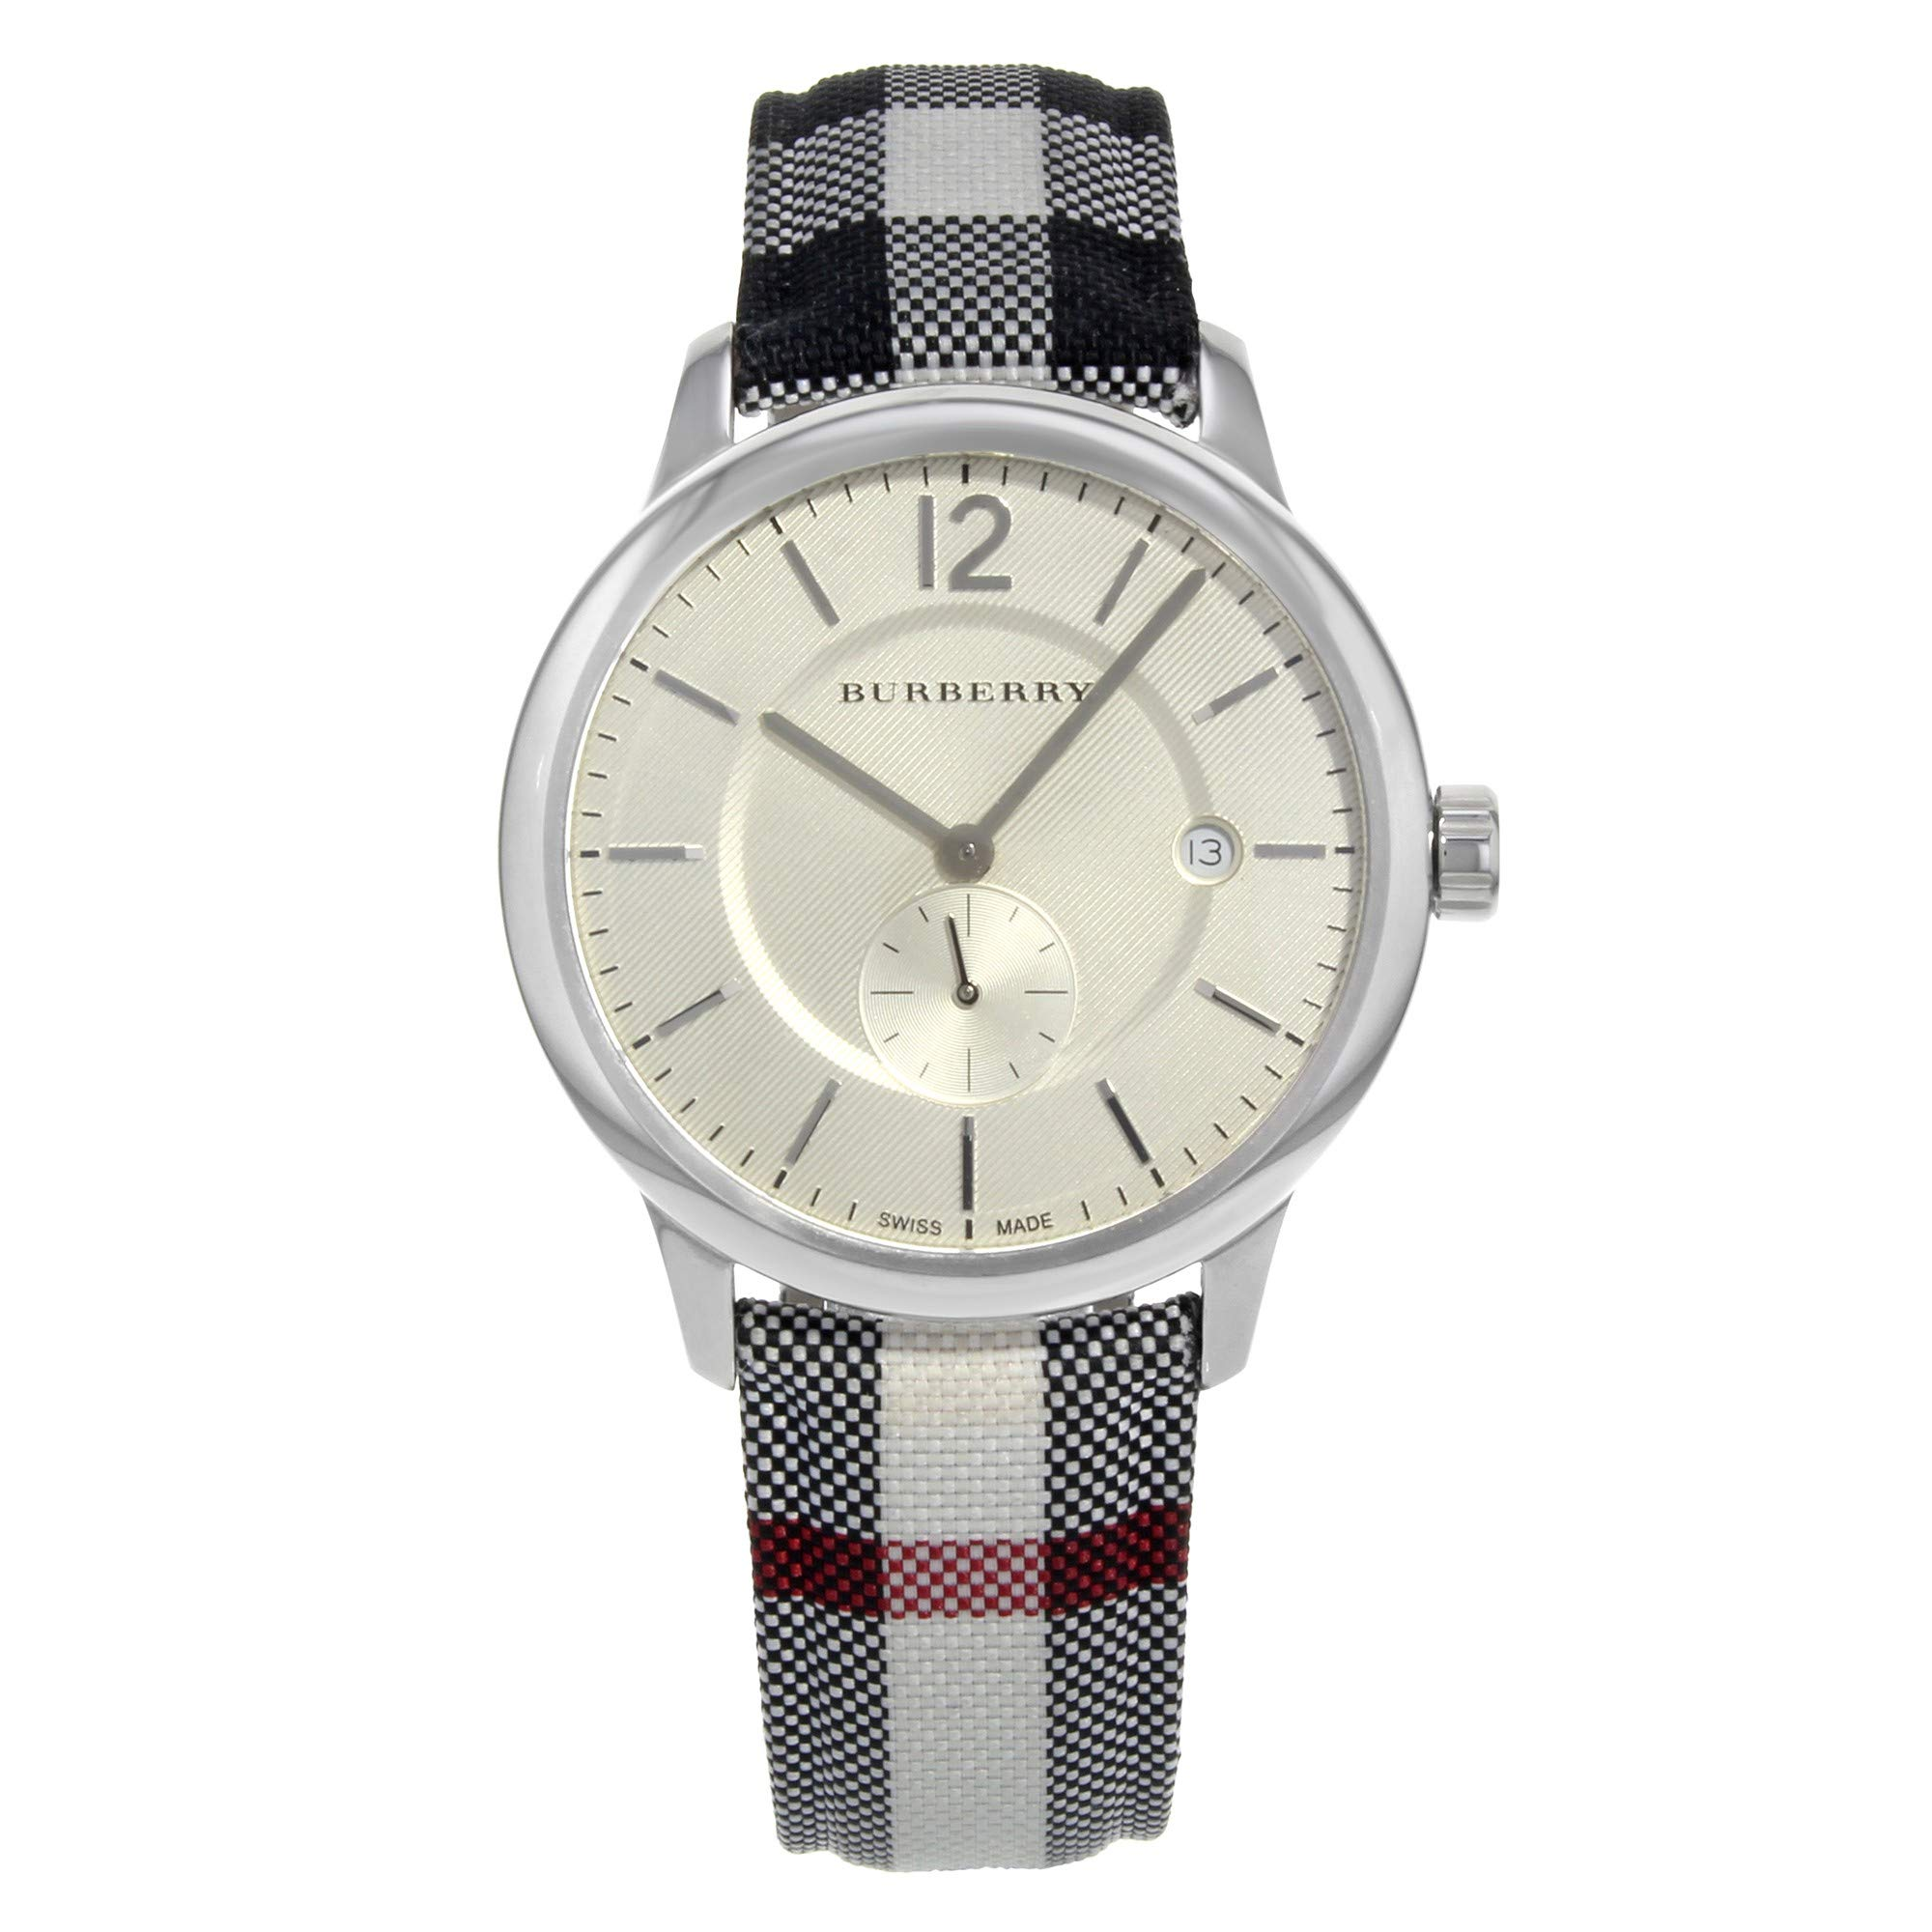 Burberry Horeseferry Quartz Male Watch BU10002 (Certified Pre-Owned) by BURBERRY